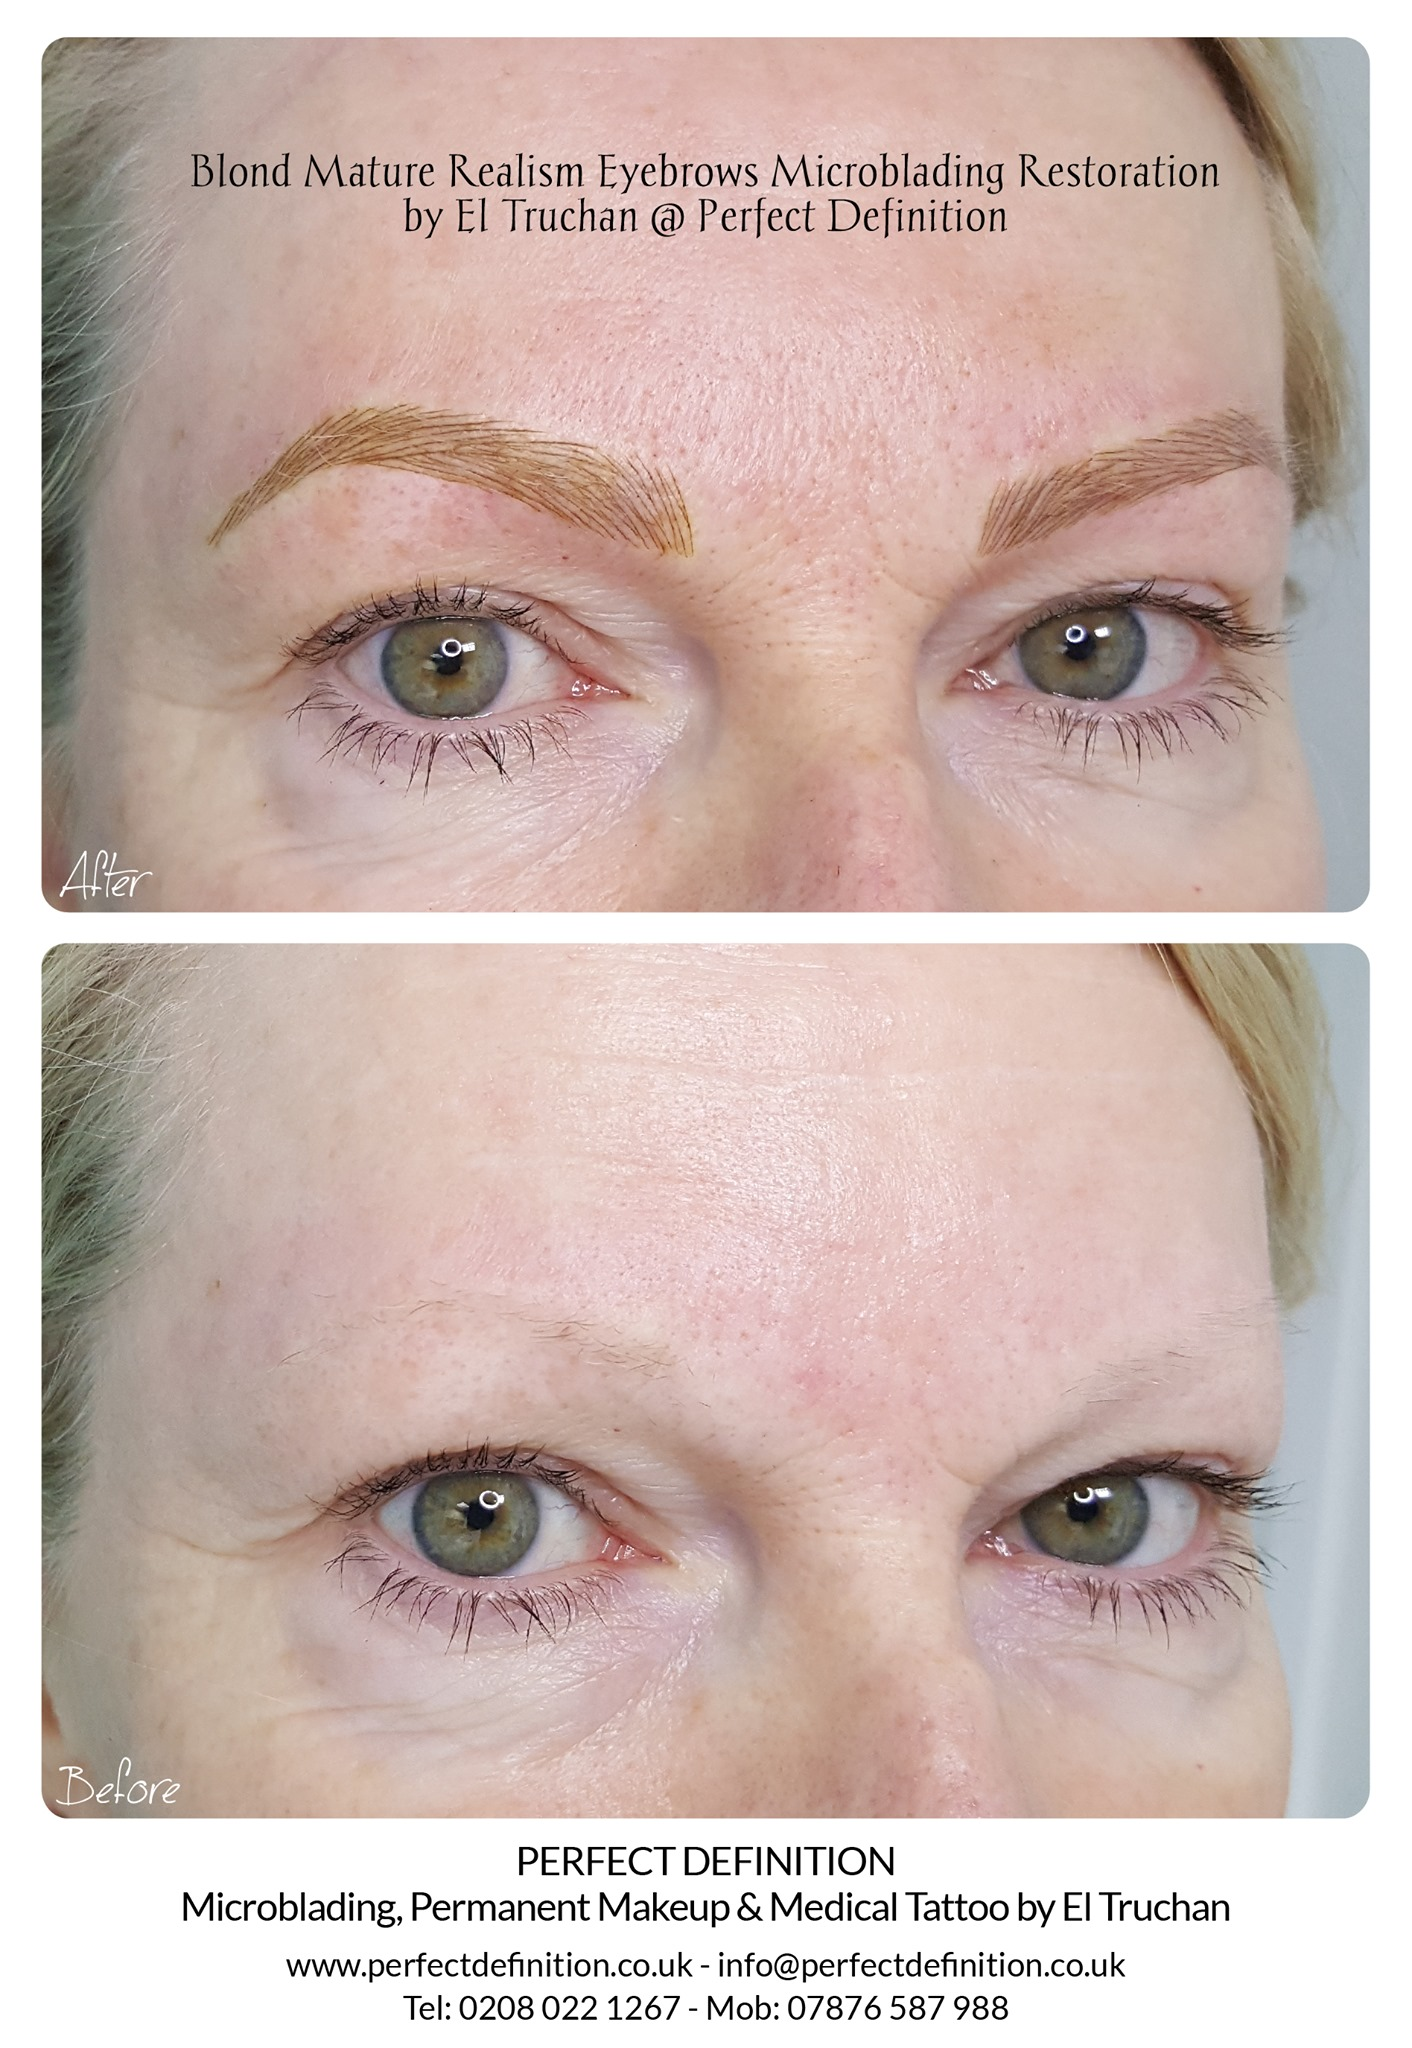 Blonde Mature Realism Eyebrows Microblad